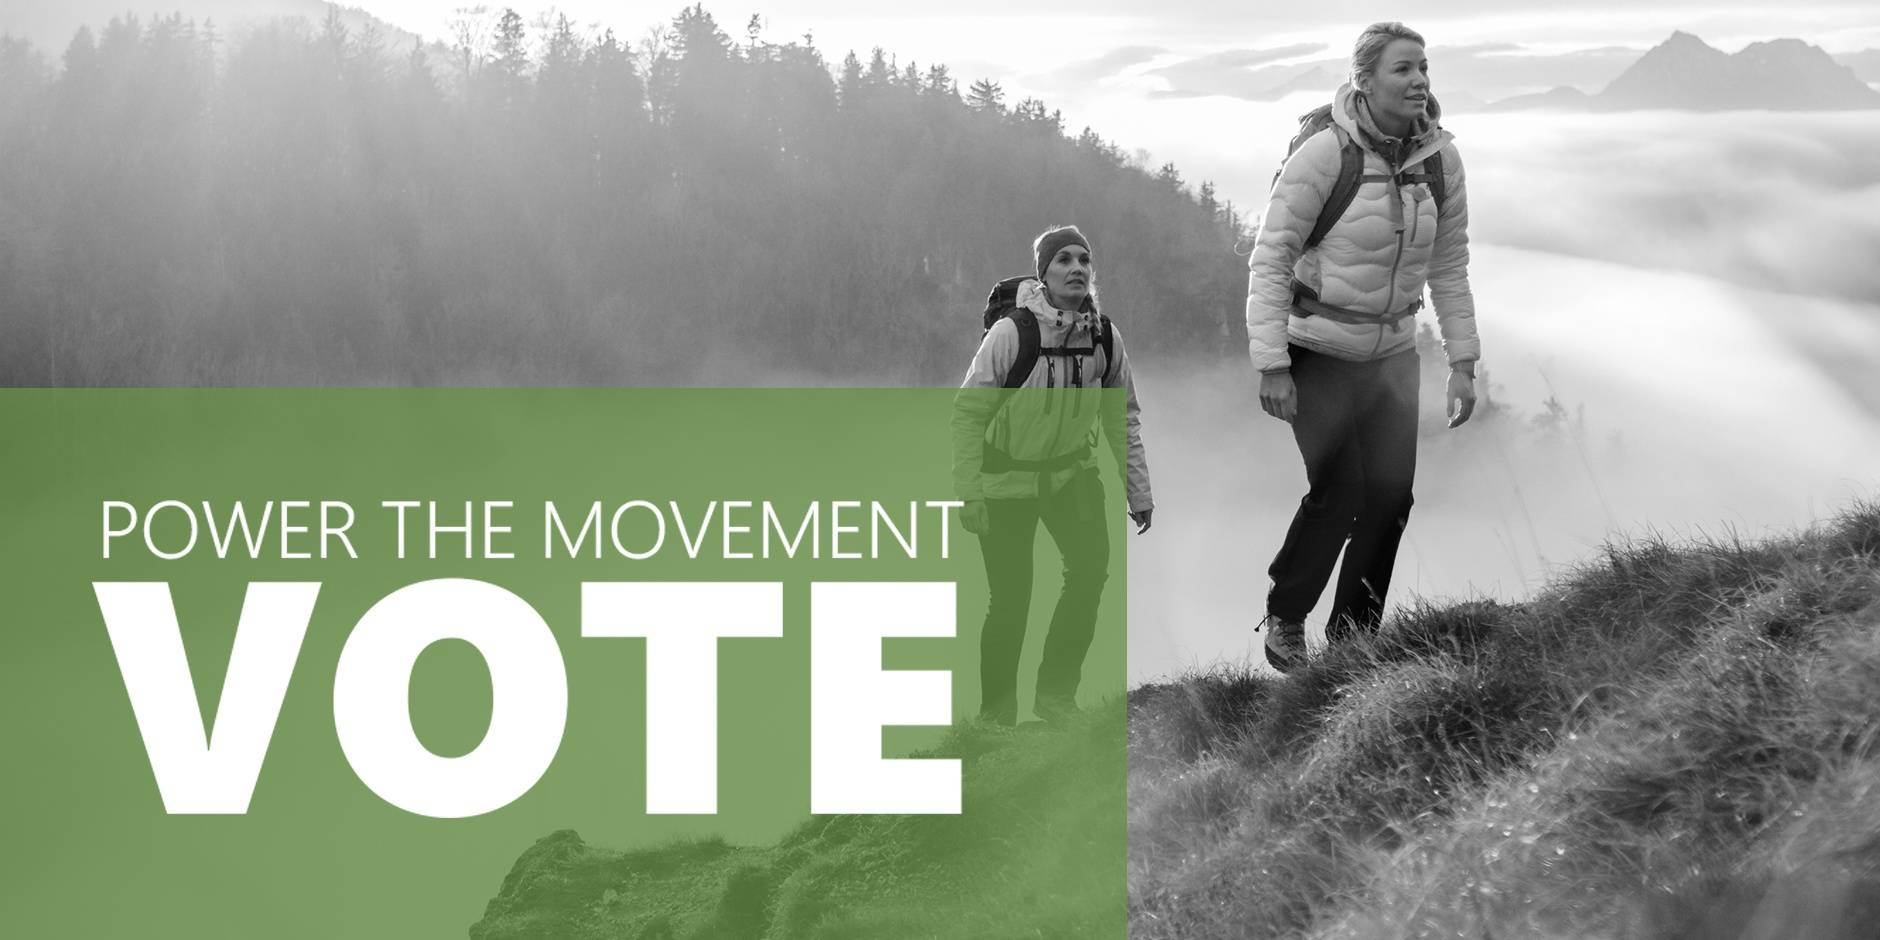 Vote Now and Power the Movement